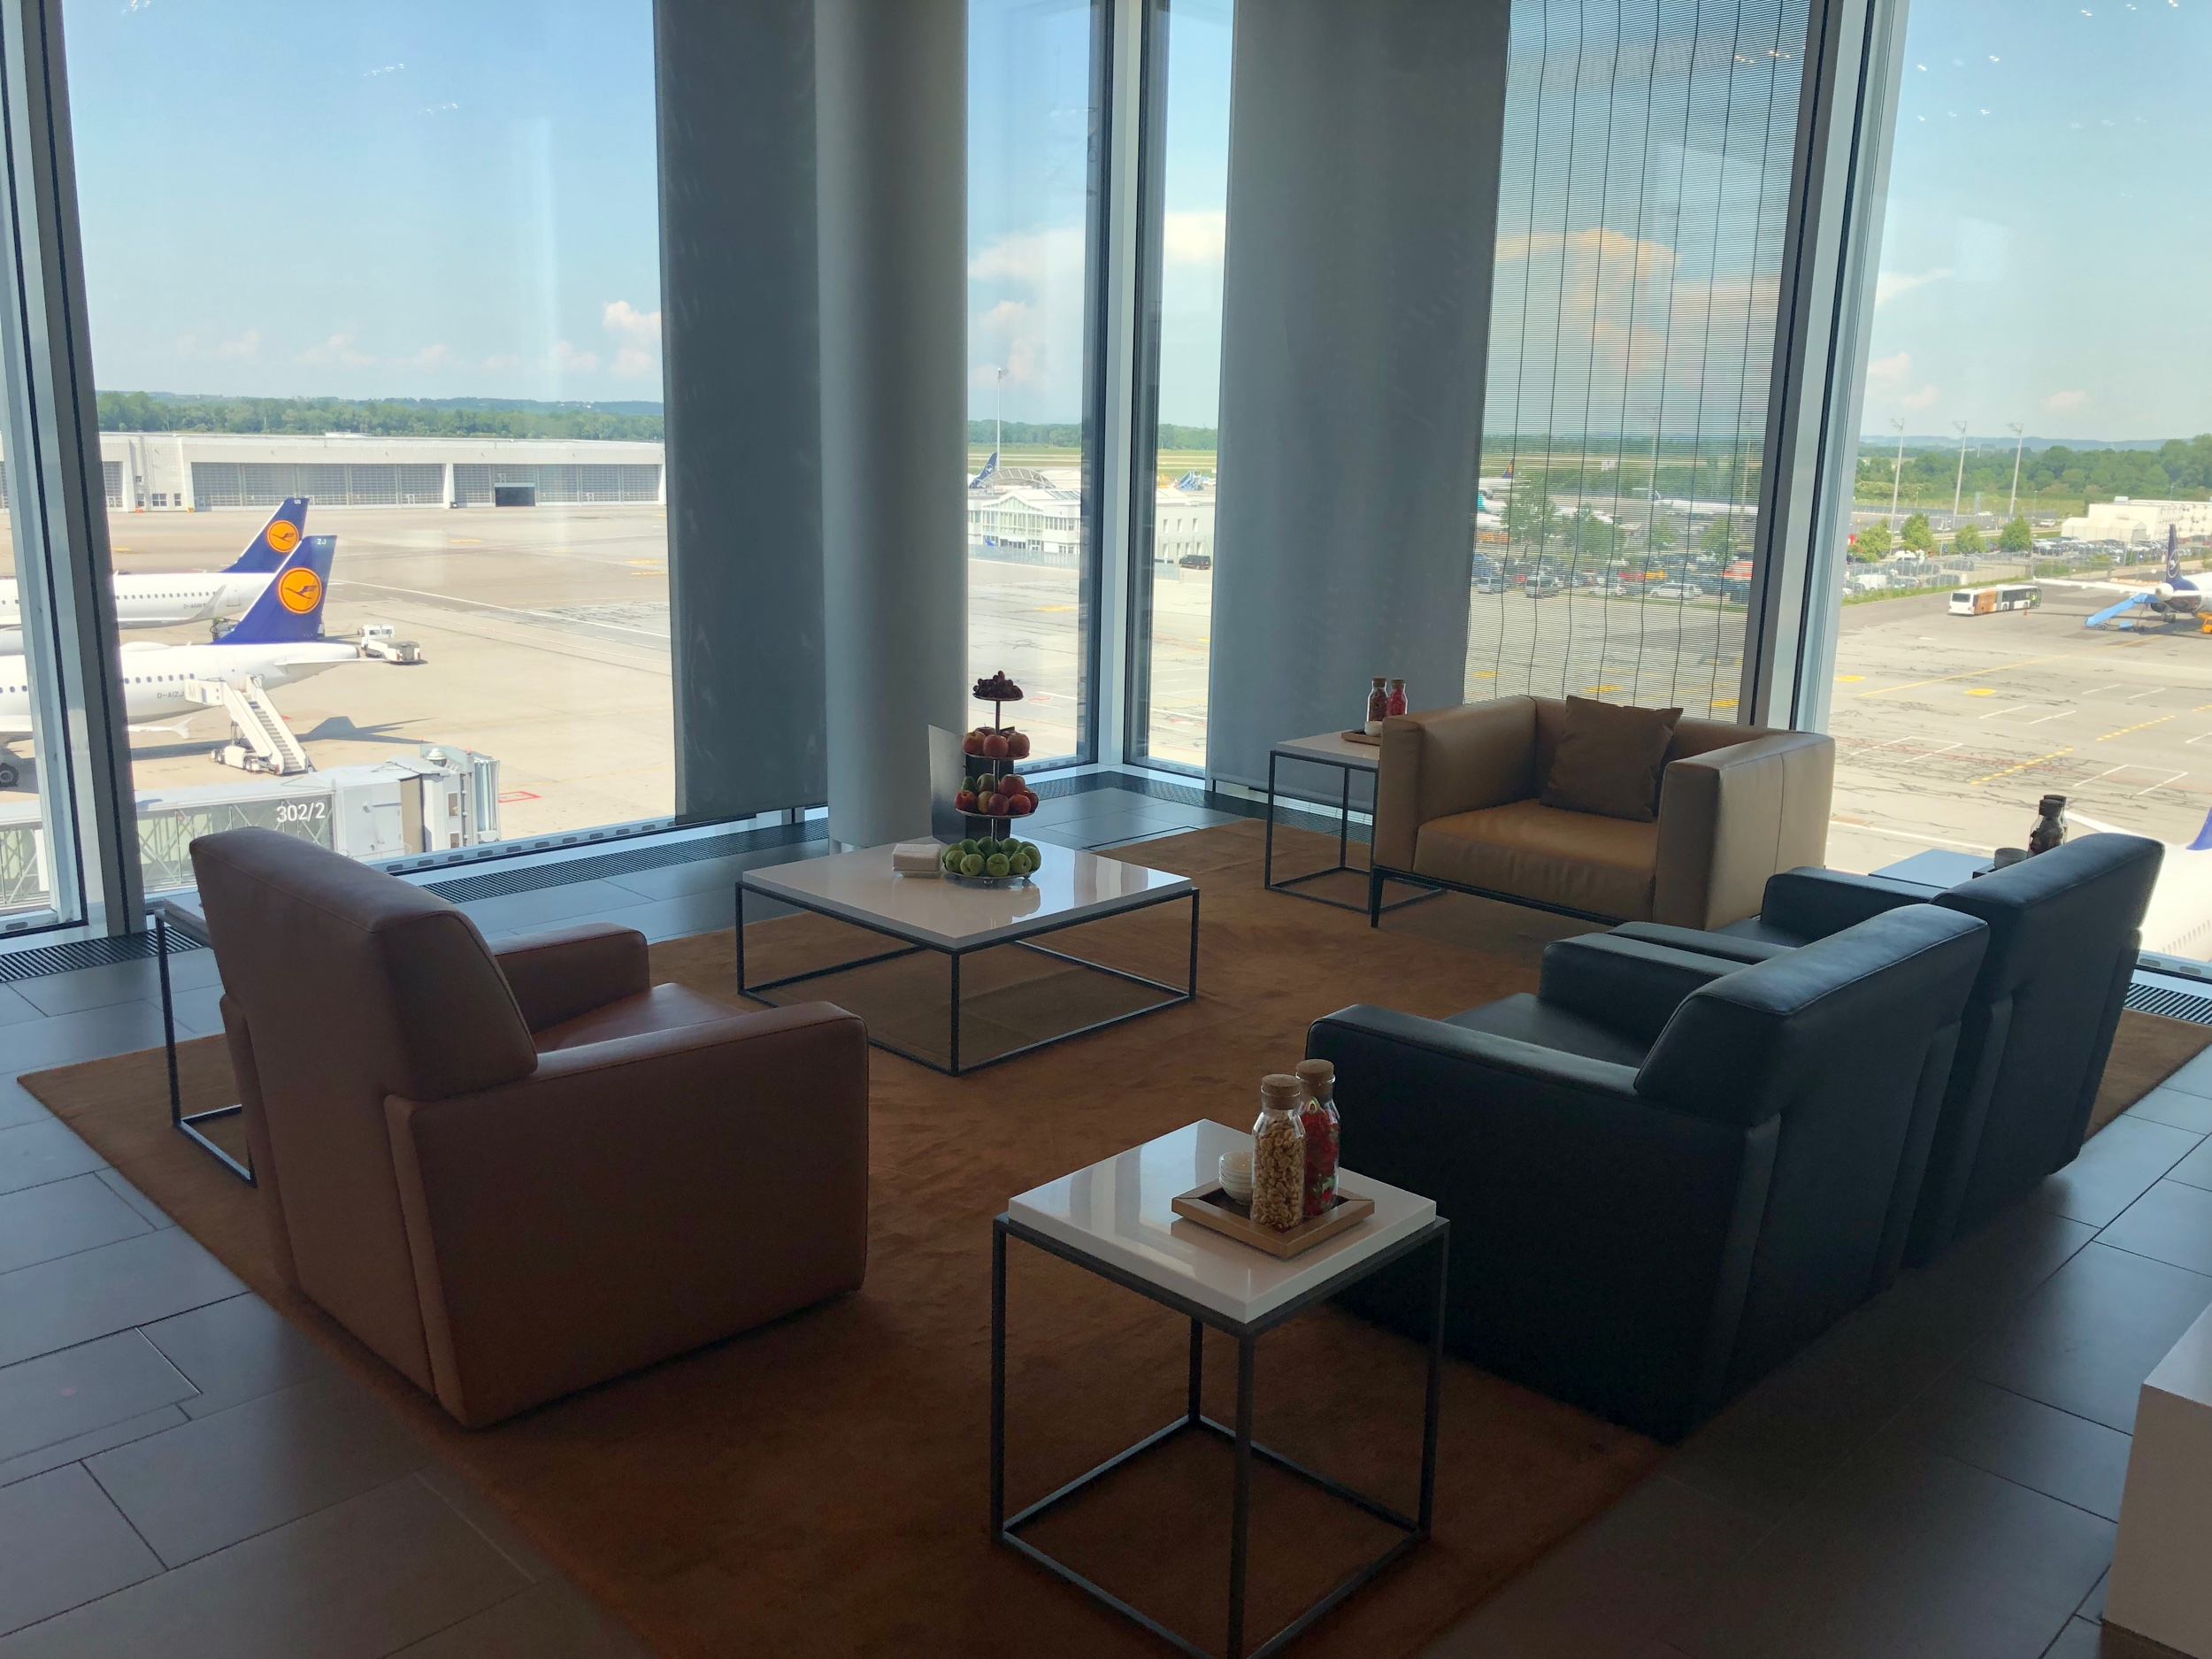 Lufthansa First Class Lounge Munich Seating Area